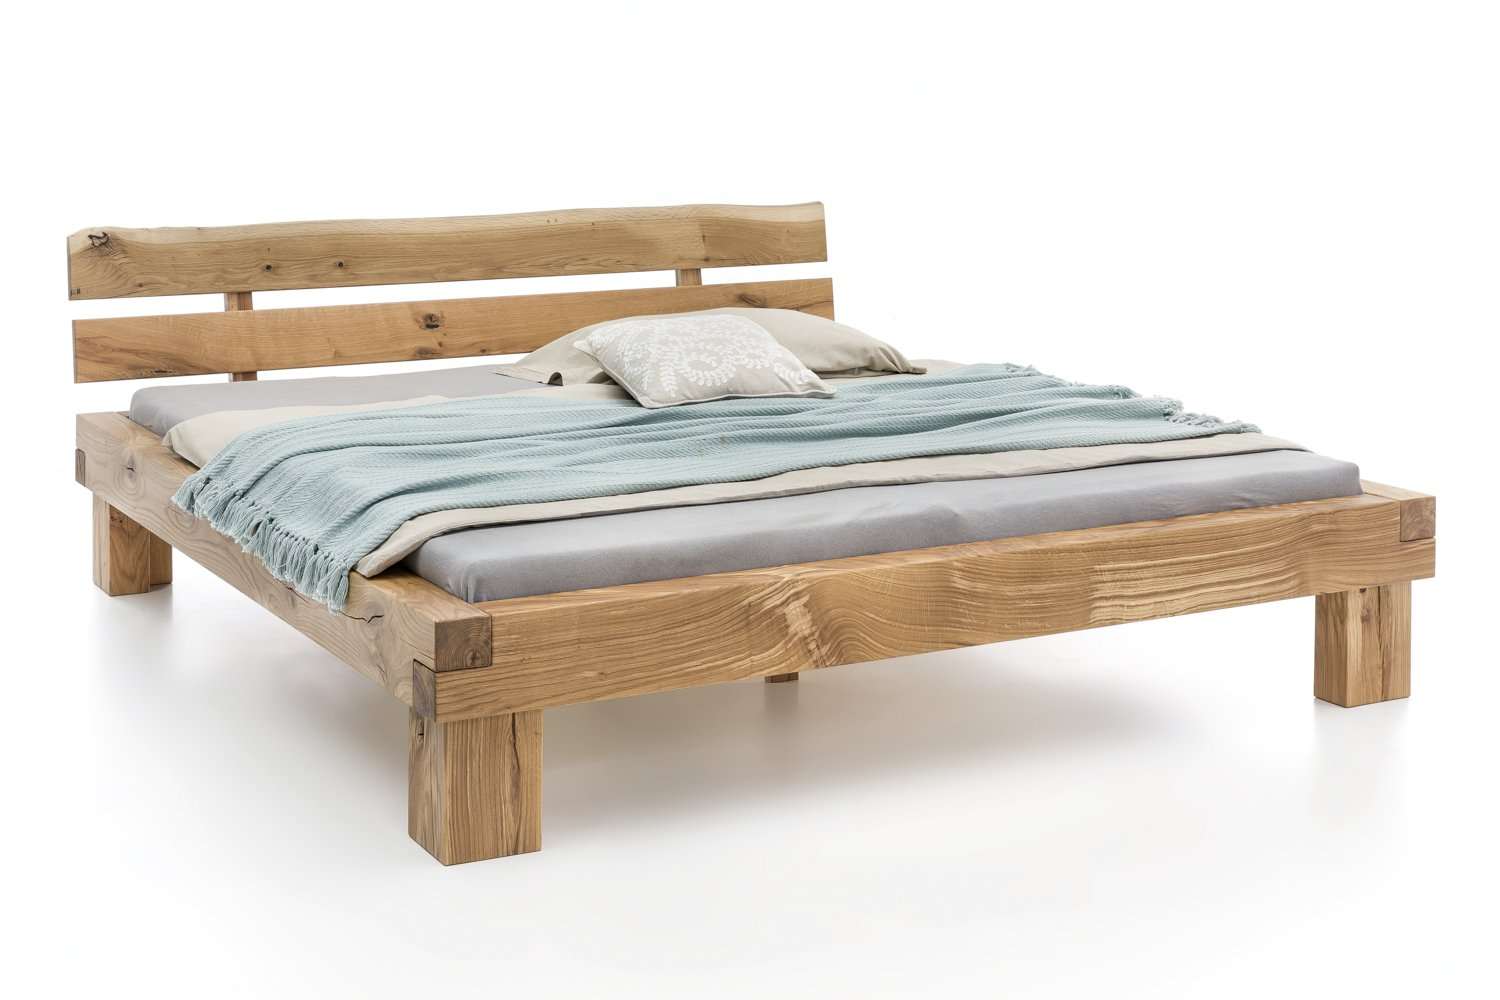 holzbetten 180x200 great with holzbetten 180x200 full size of echtholz bett x hausliche x x. Black Bedroom Furniture Sets. Home Design Ideas